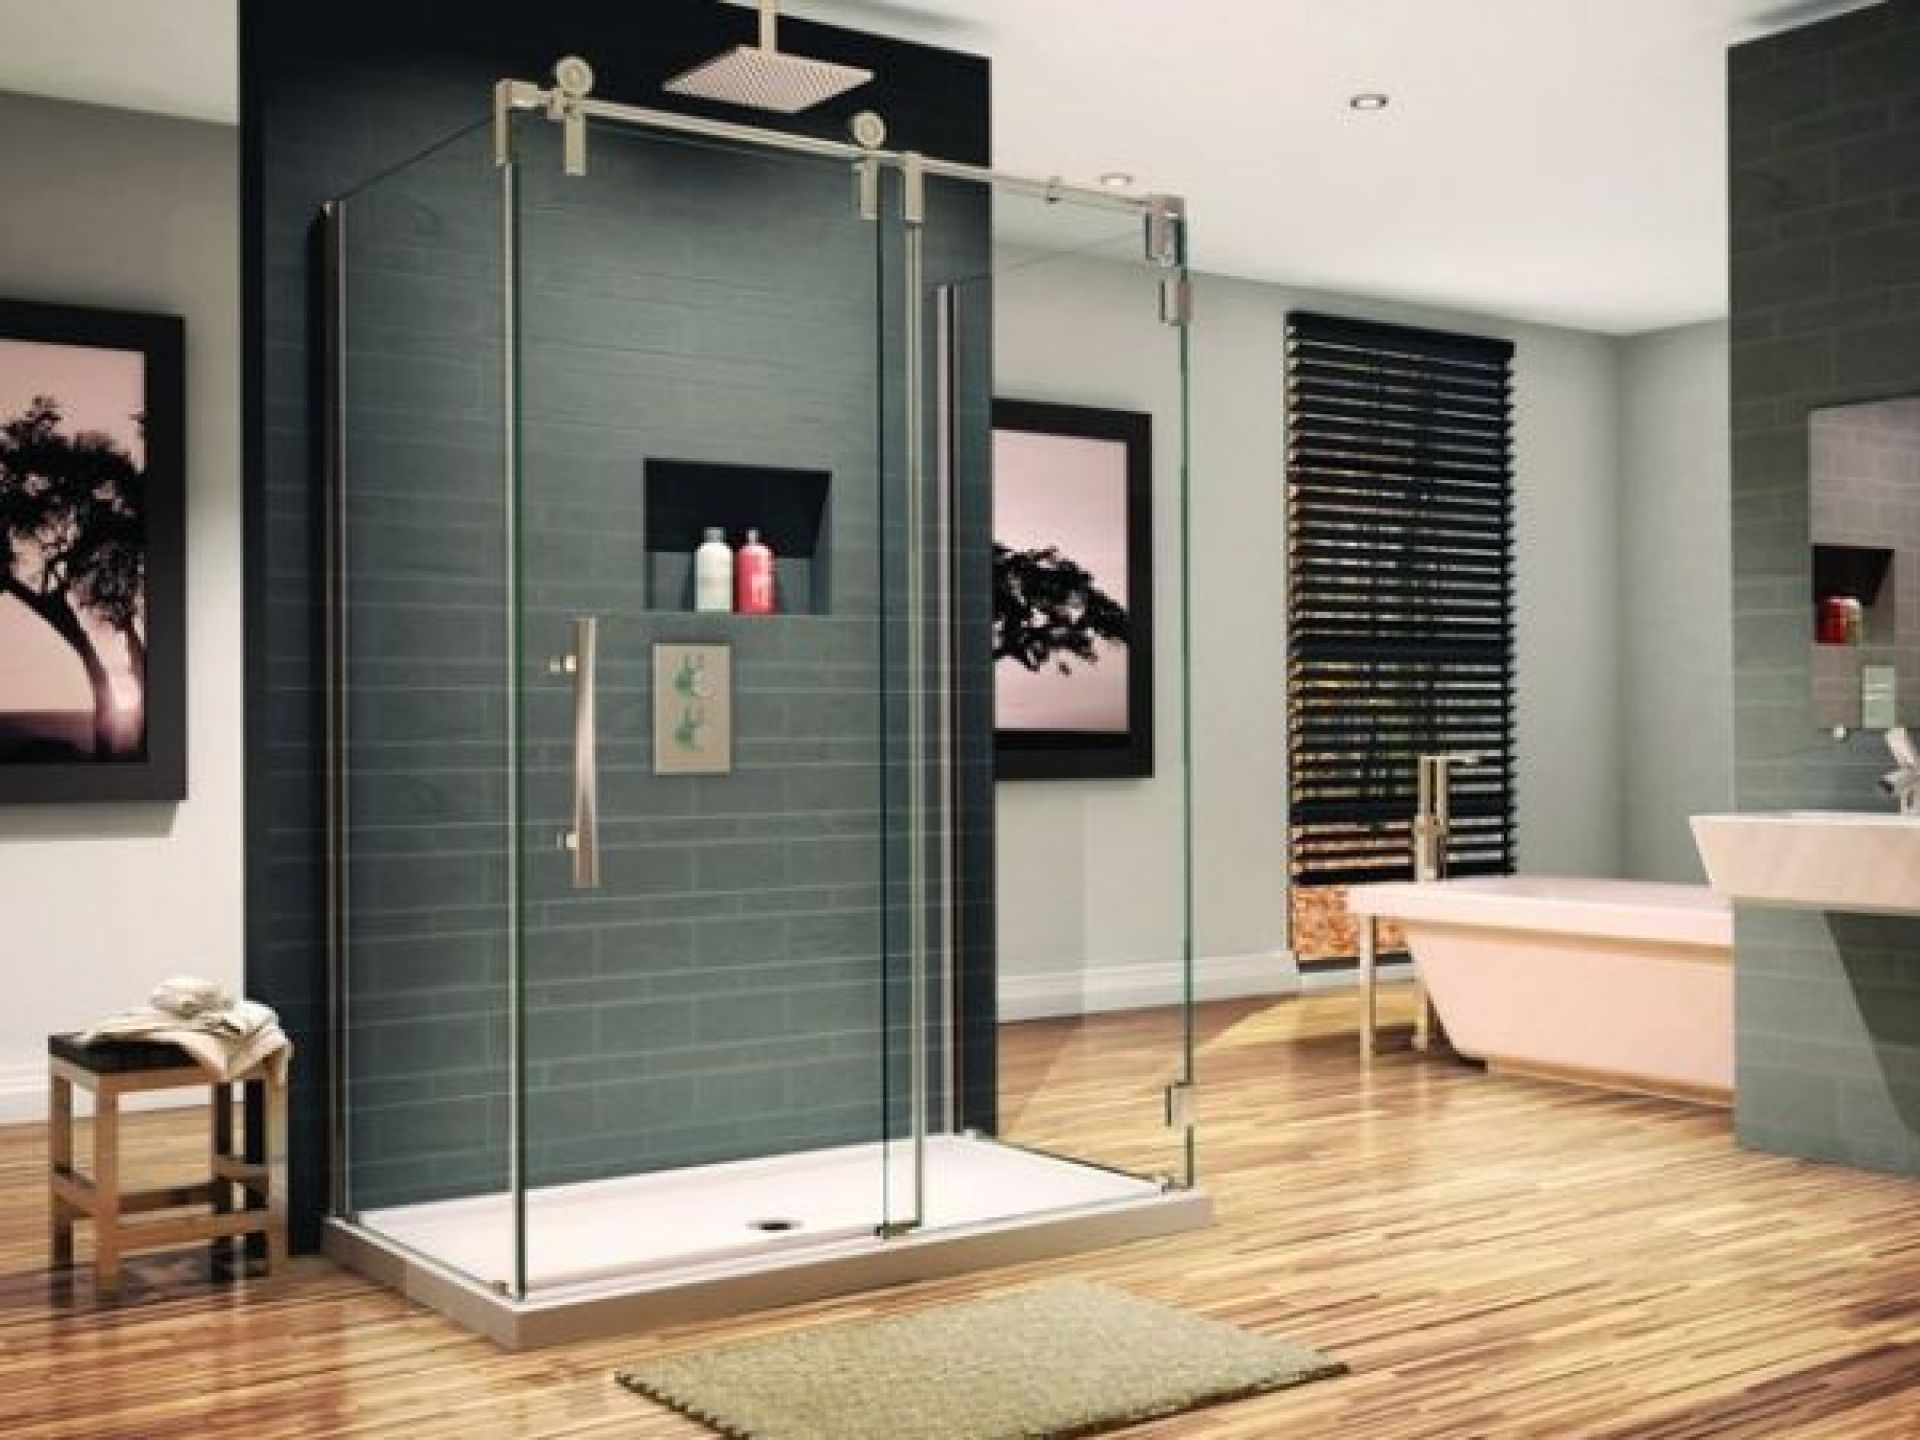 Interior Cool Bathroom Designs Images With Dark Wall Paints And Hardwood Floor With Clear Glass Do Glass Shower Bathroom Shower Design Glass Shower Enclosures